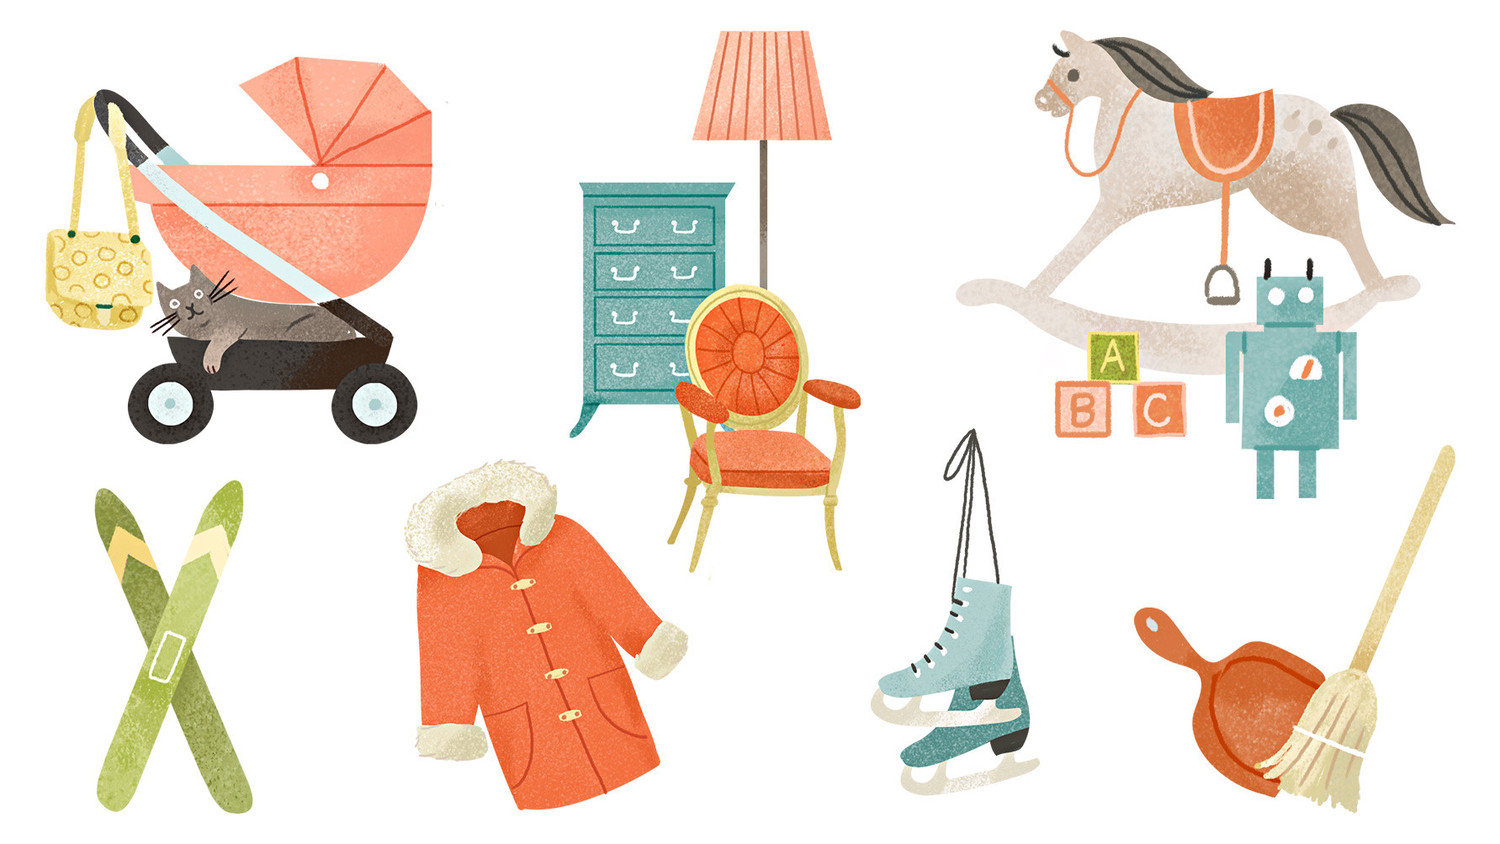 illustrations of household items broom coat toys